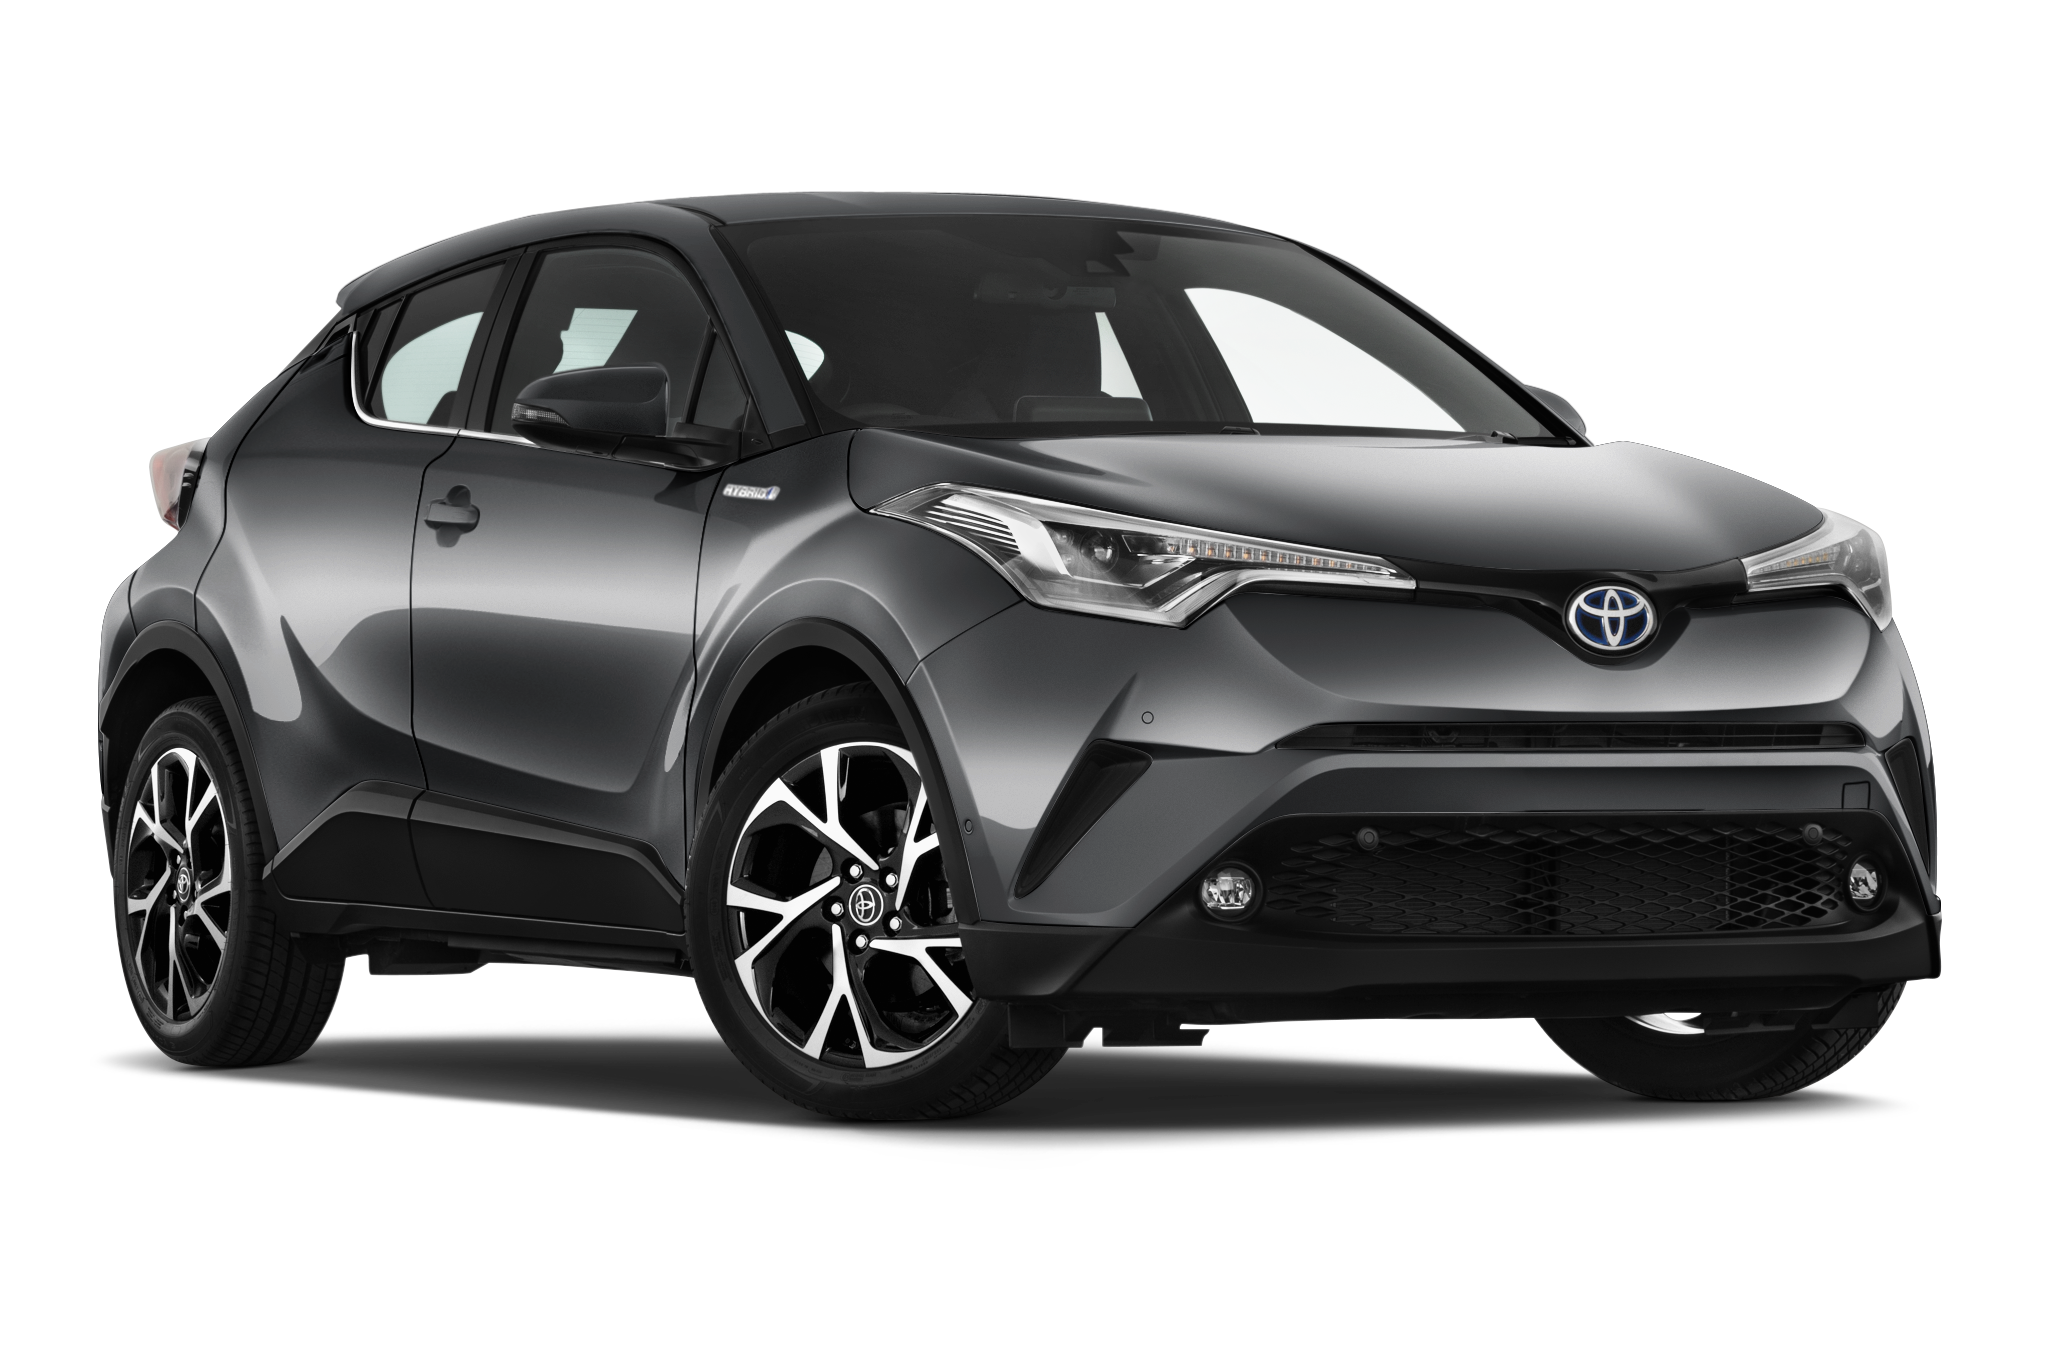 Right Driver side wing mirror glass for Toyota C-HR 2016-On